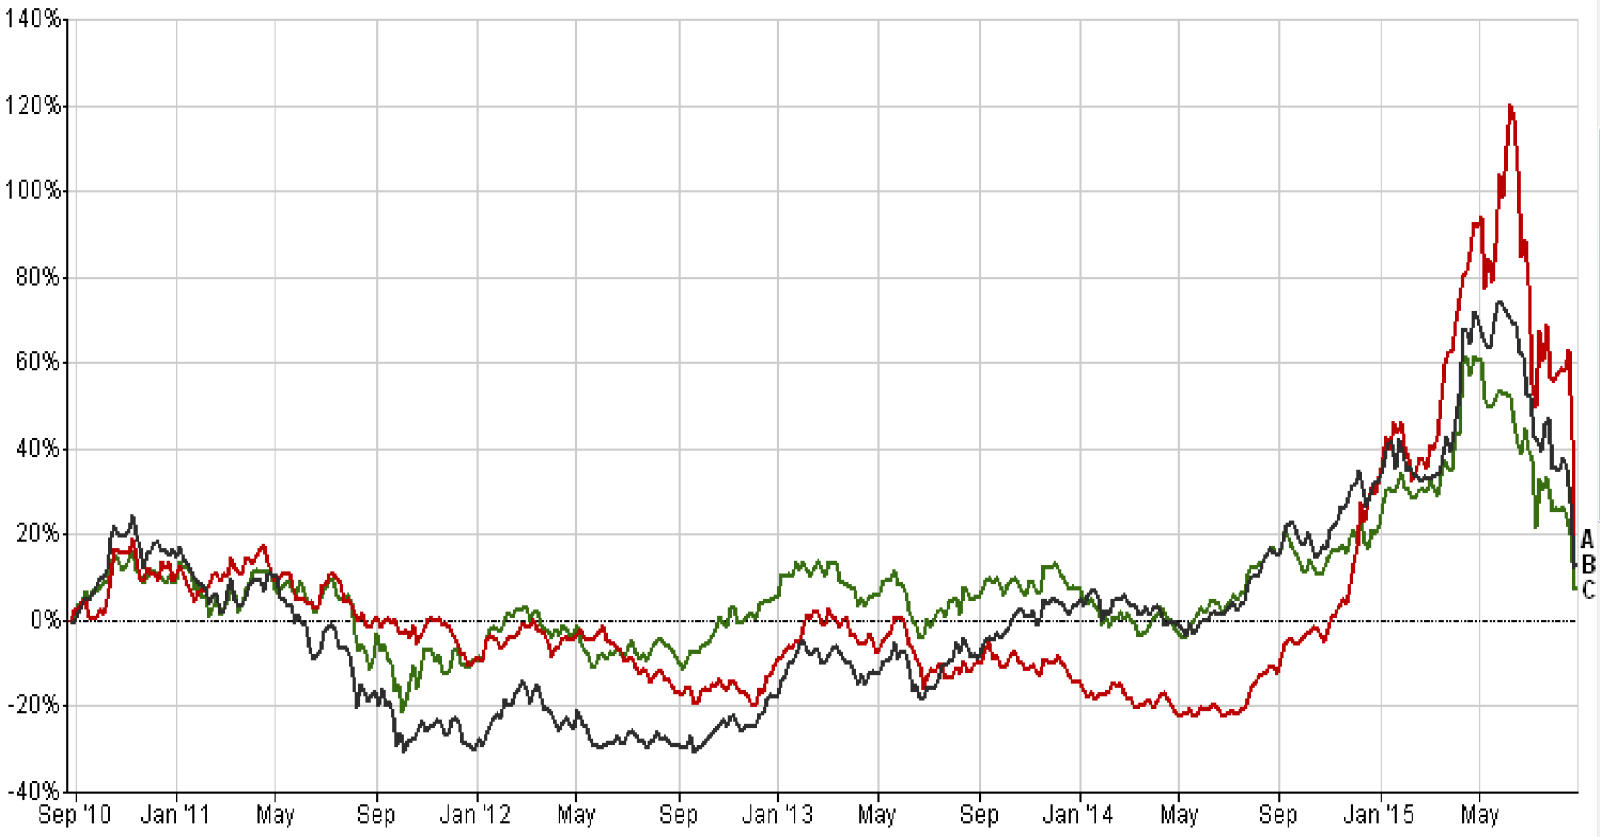 Performance of Chinese stocks and Fidelity China Special Situations